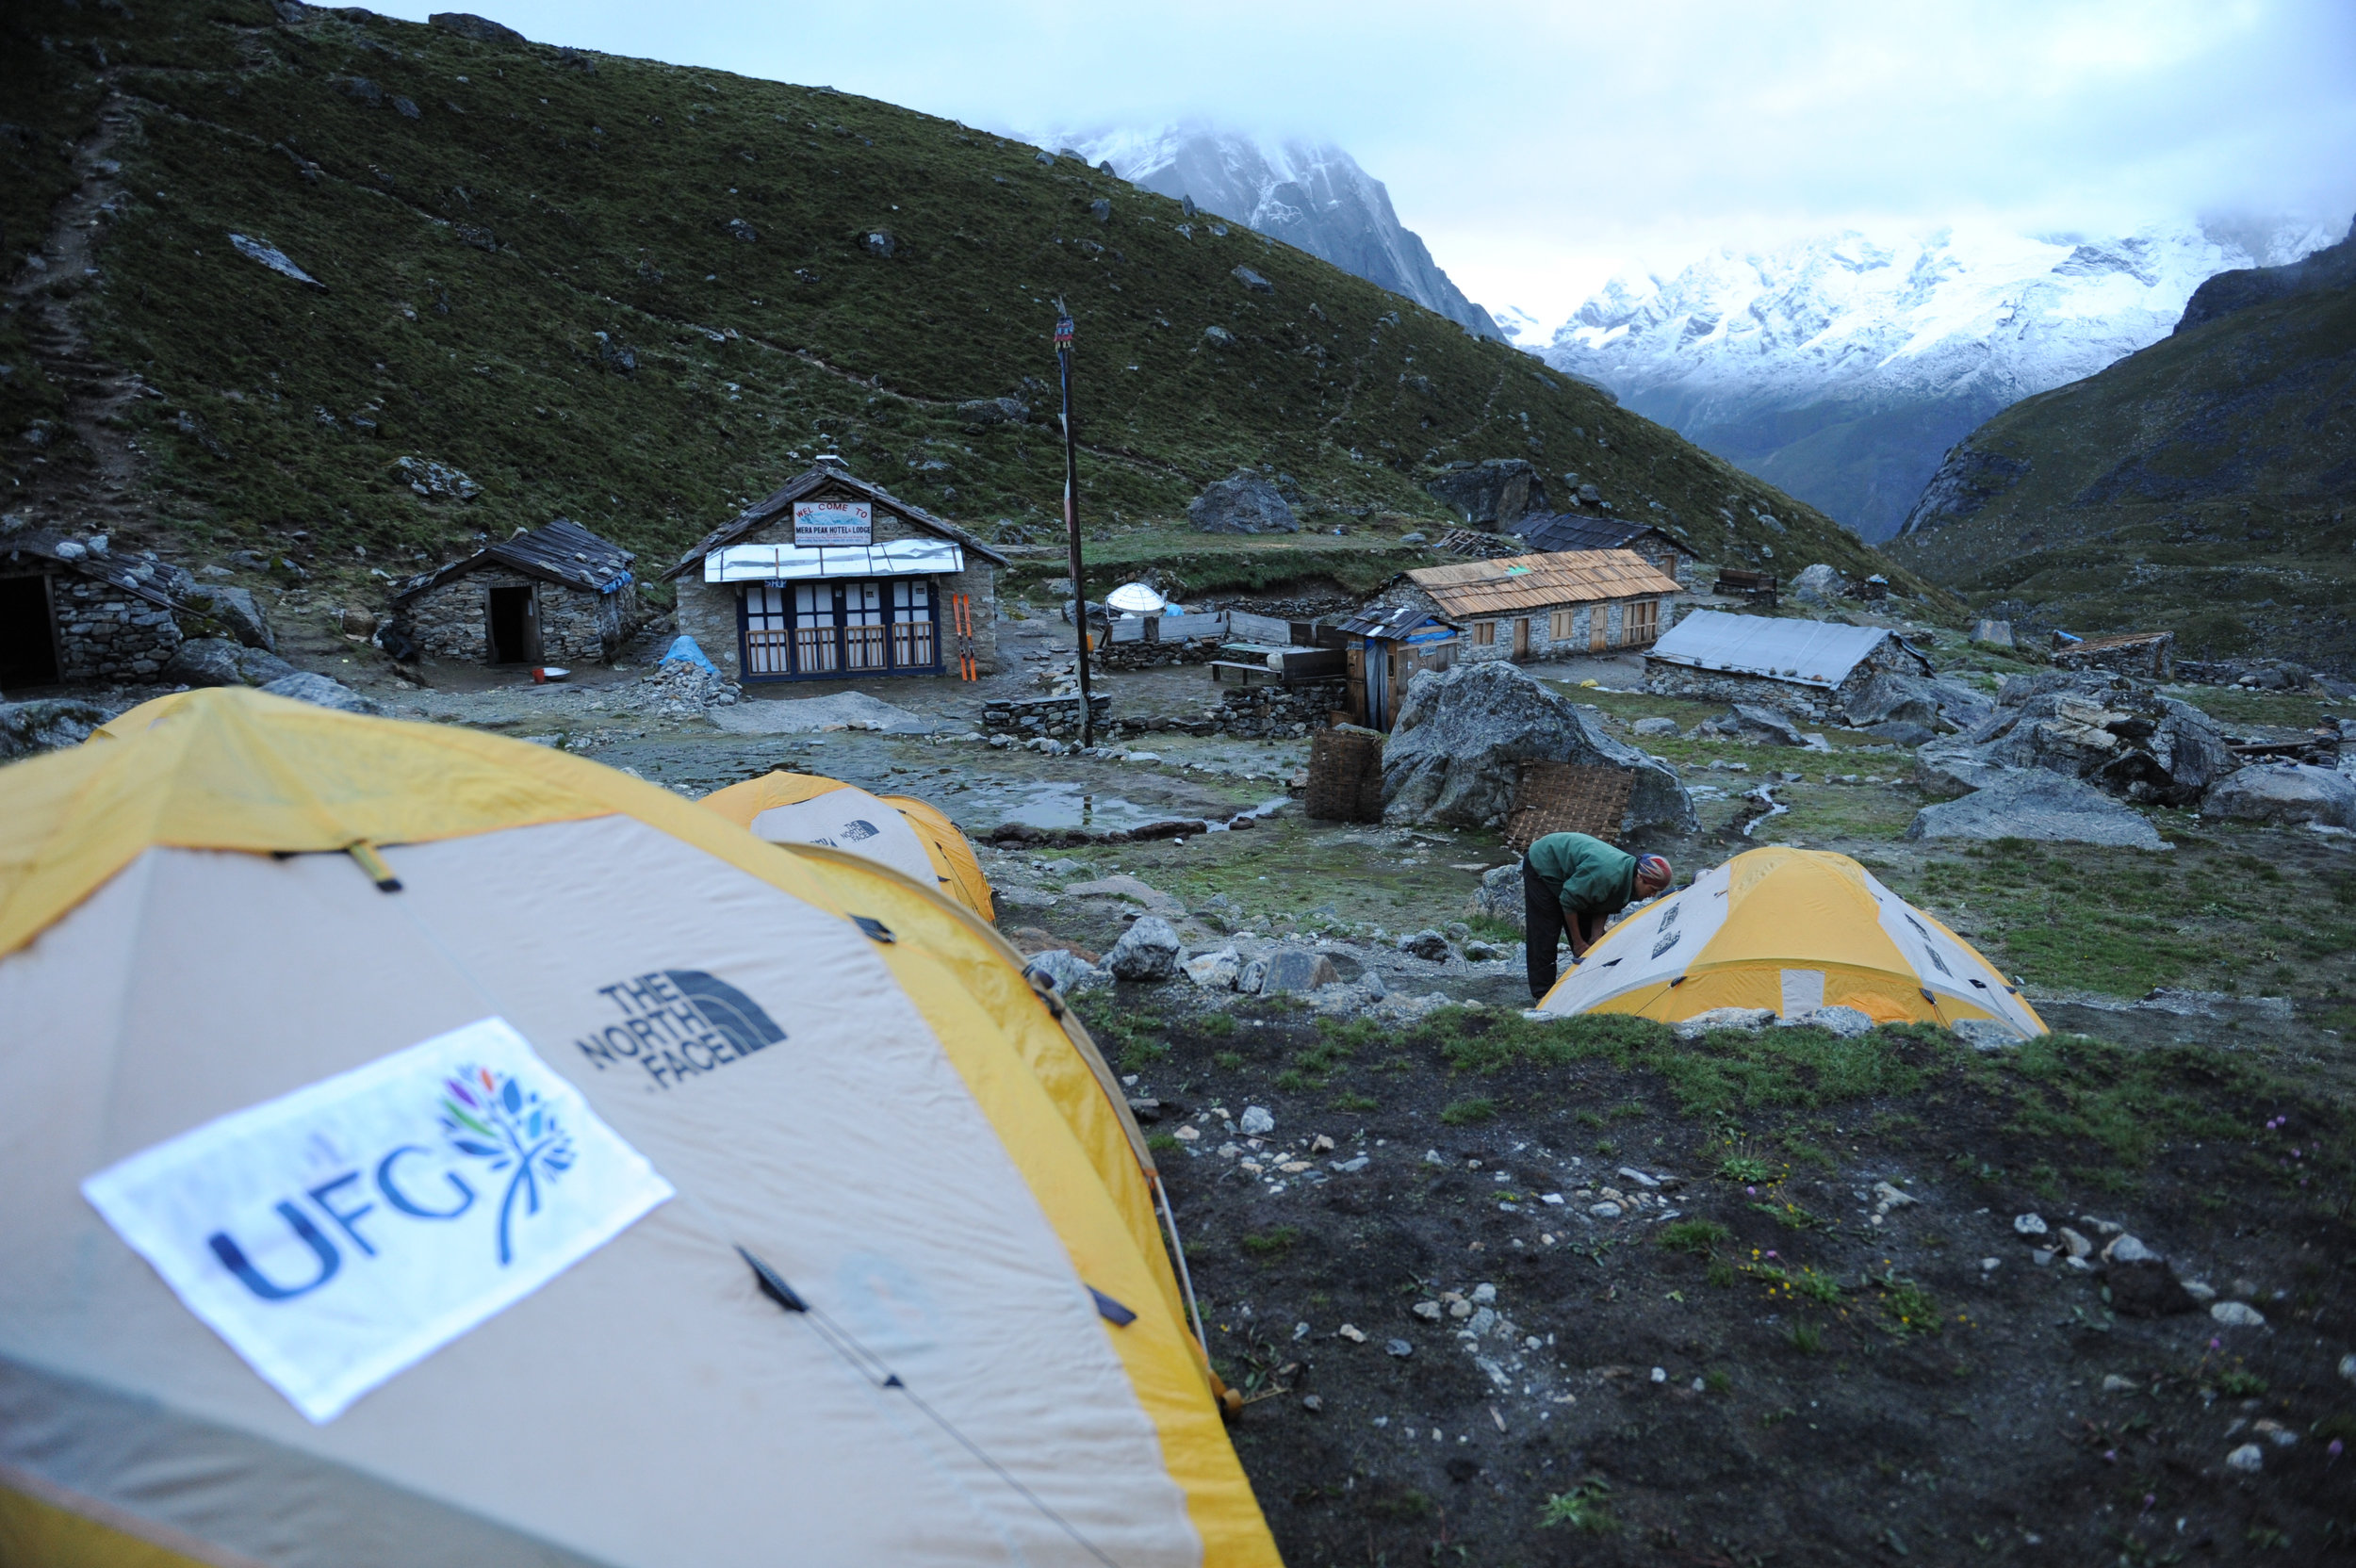 Typical camp at lower altitudes.